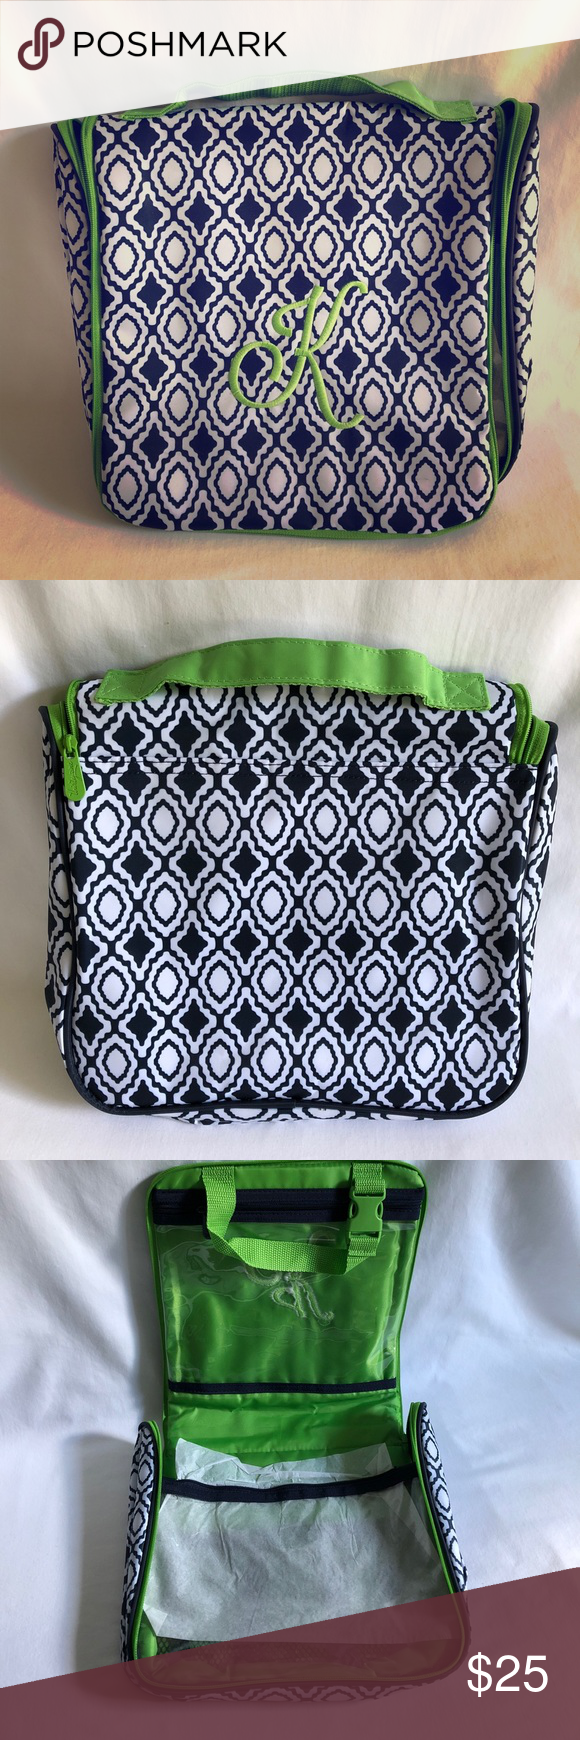 49359540531c Thirty-one 31 Navy Perfect Pendant travel bag Authentic Thirty-one ...